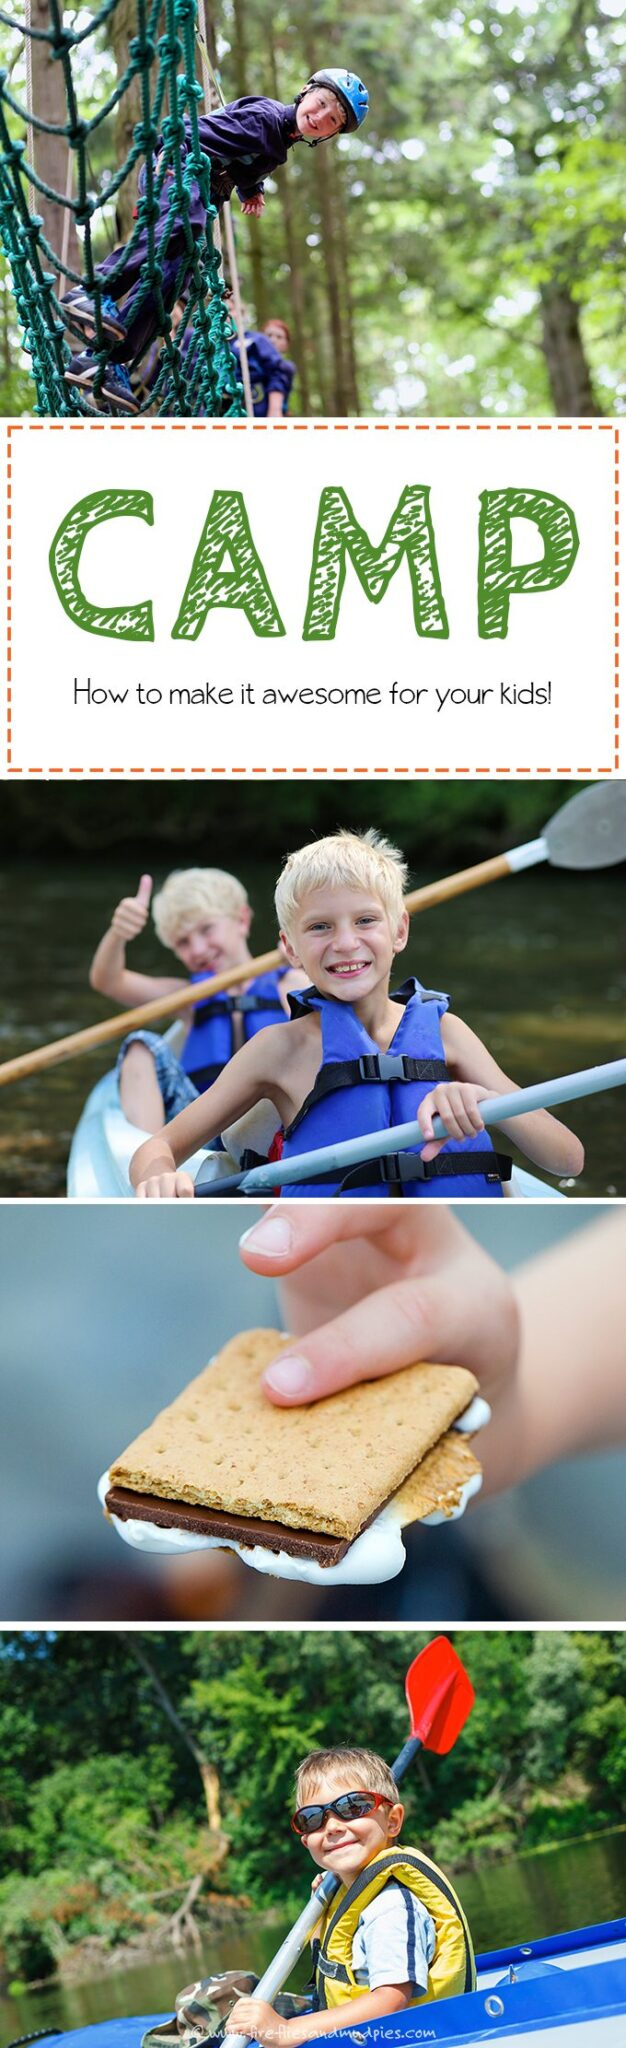 Parents have an important role in summer camp success. Here are 10 tips from camp professionals of how parents can help make summer camp awesome for their child.